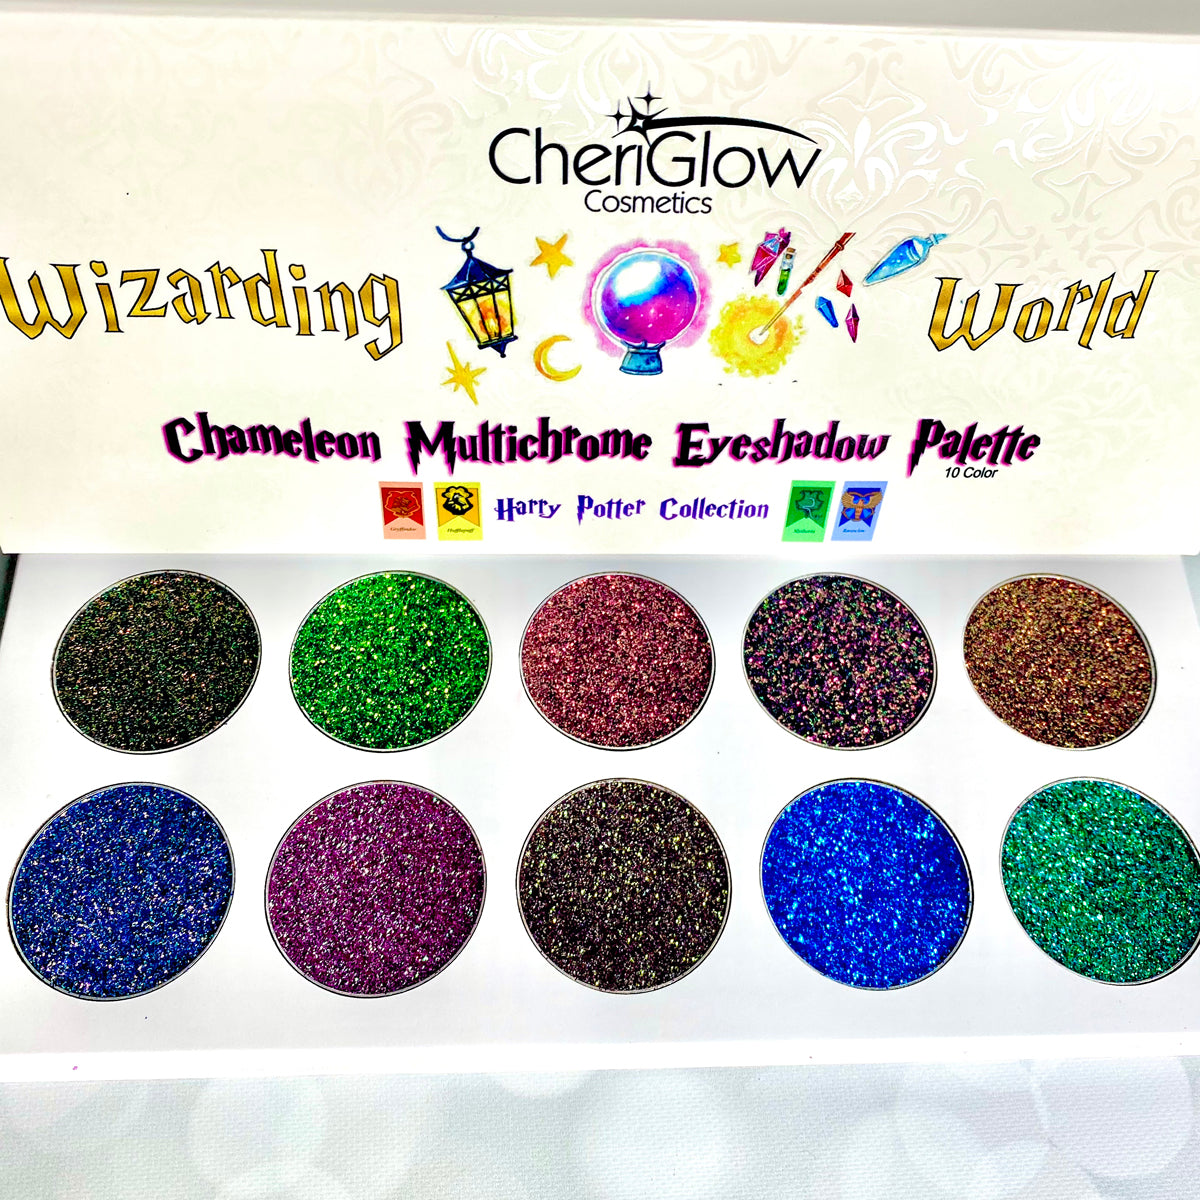 Wizarding World Chameleon Multichrome Glitter Eyeshadow Palette